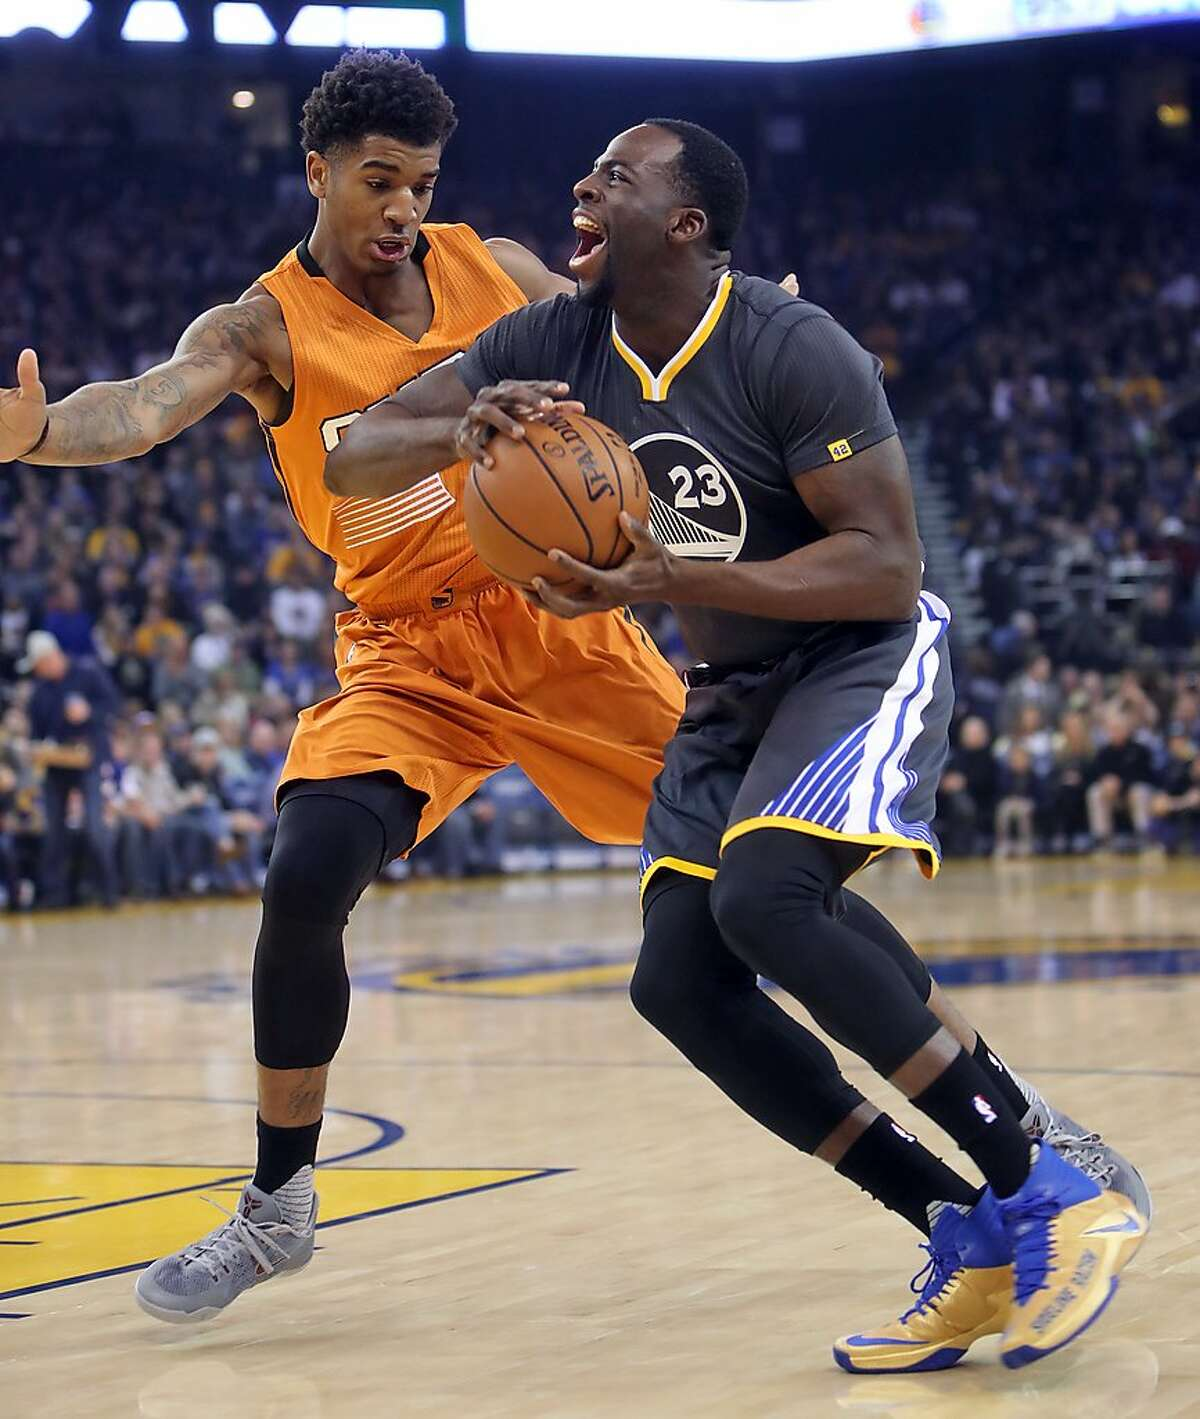 Golden State Warriors' Draymond Green is fouled by Phoenix Suns' Marquese Chriss in 1st quarter during NBA game at Oracle Arena in Oakland, Calif., on Saturday, December 3, 2016.